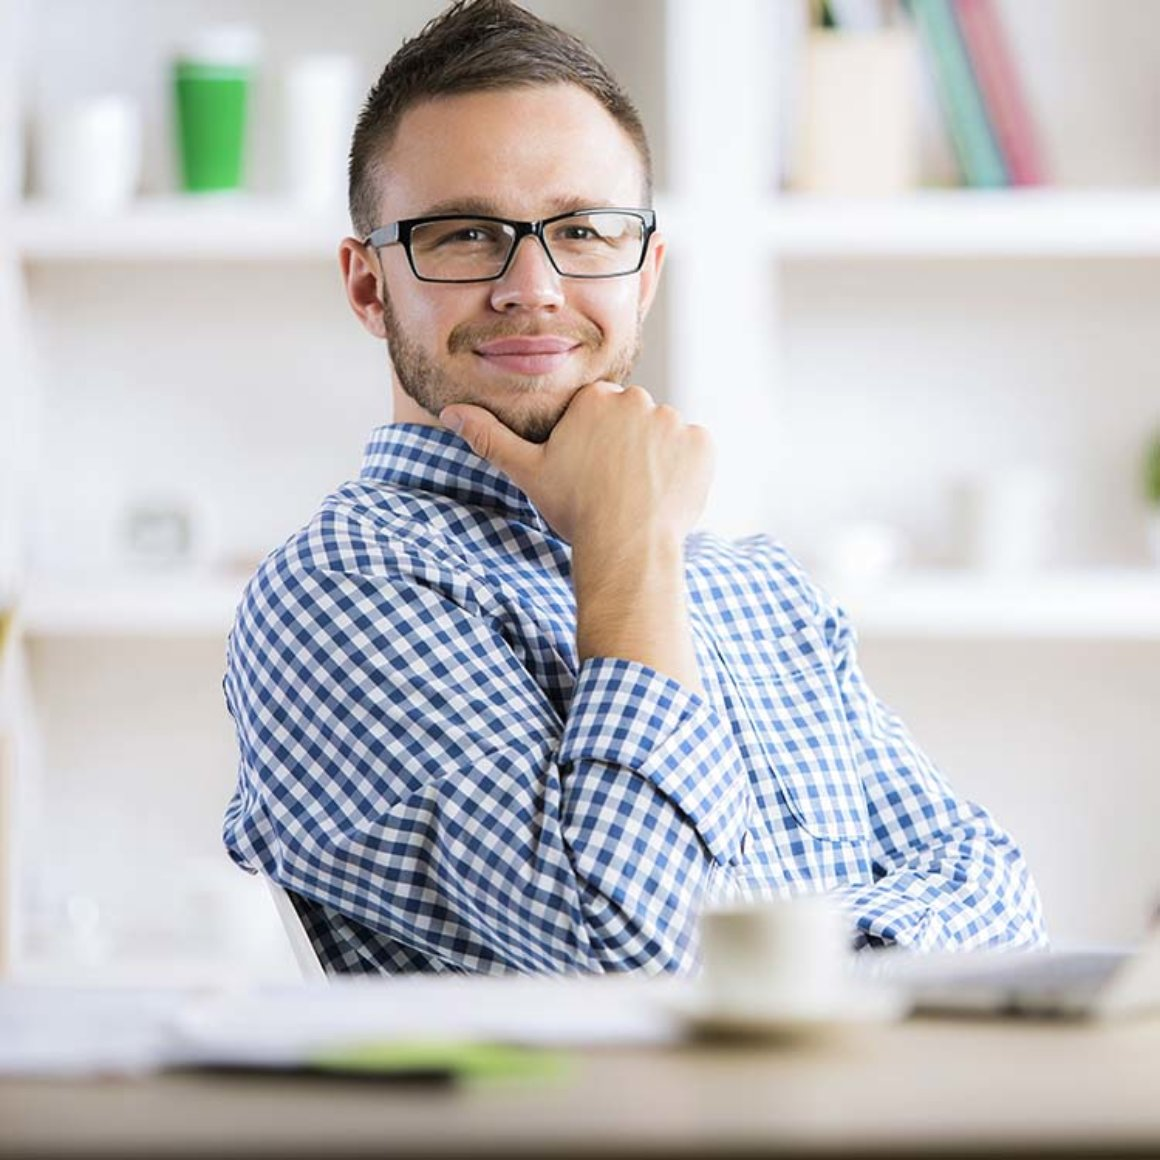 Thoughtful man at workplace